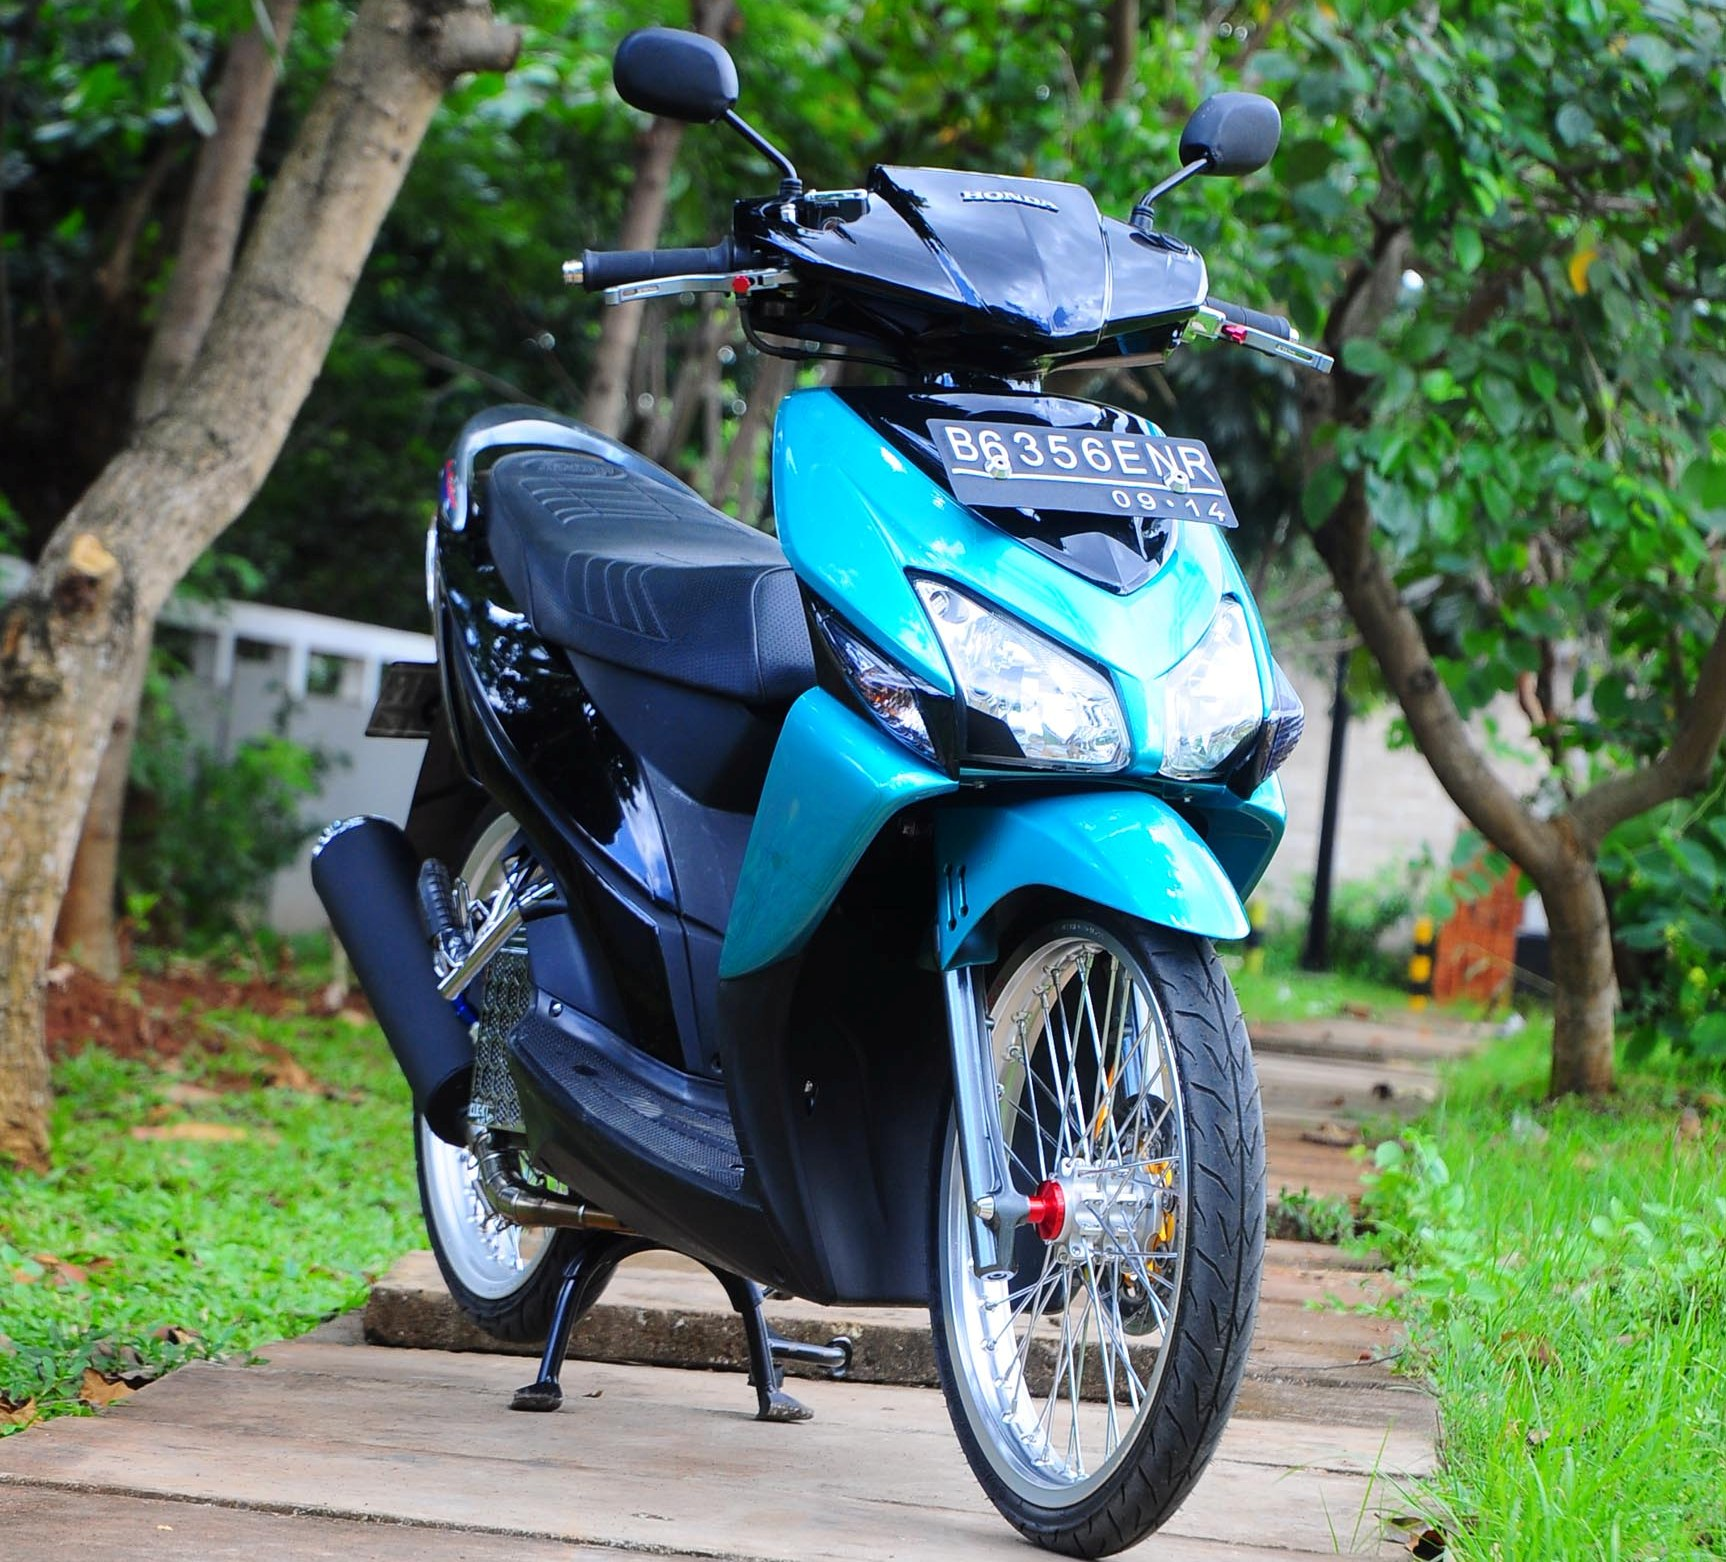 Gambar Modifikasi Motor Vario 2009 Terkeren Earth Modification